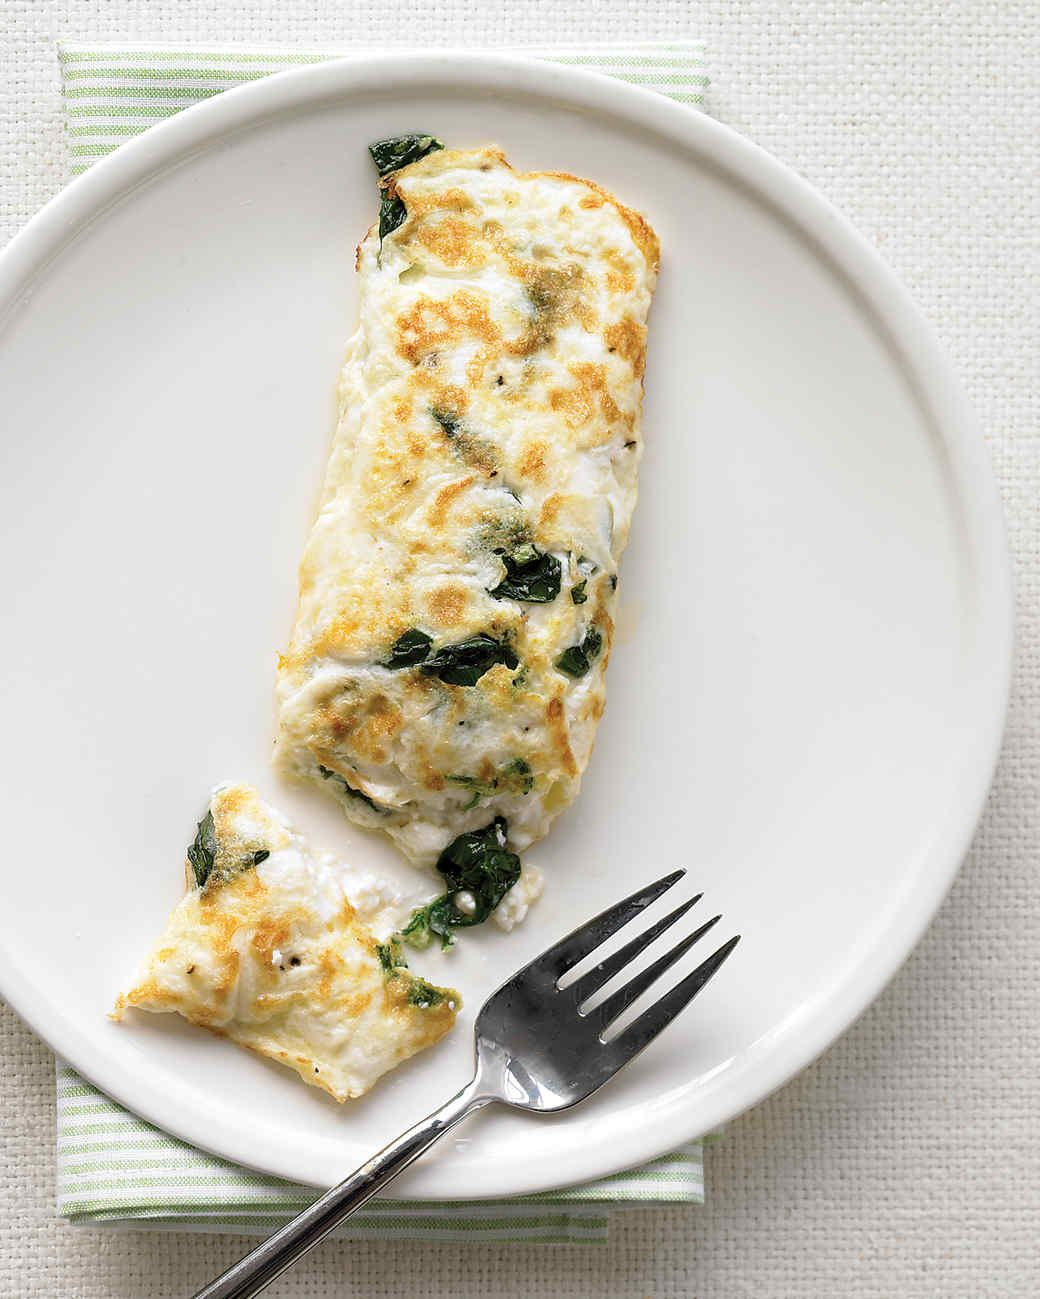 egg white omelet with spinach and cottage cheese recipe rh pinterest co uk Cottage Cheese and Spinach Pasta recipes using cottage cheese and pasta